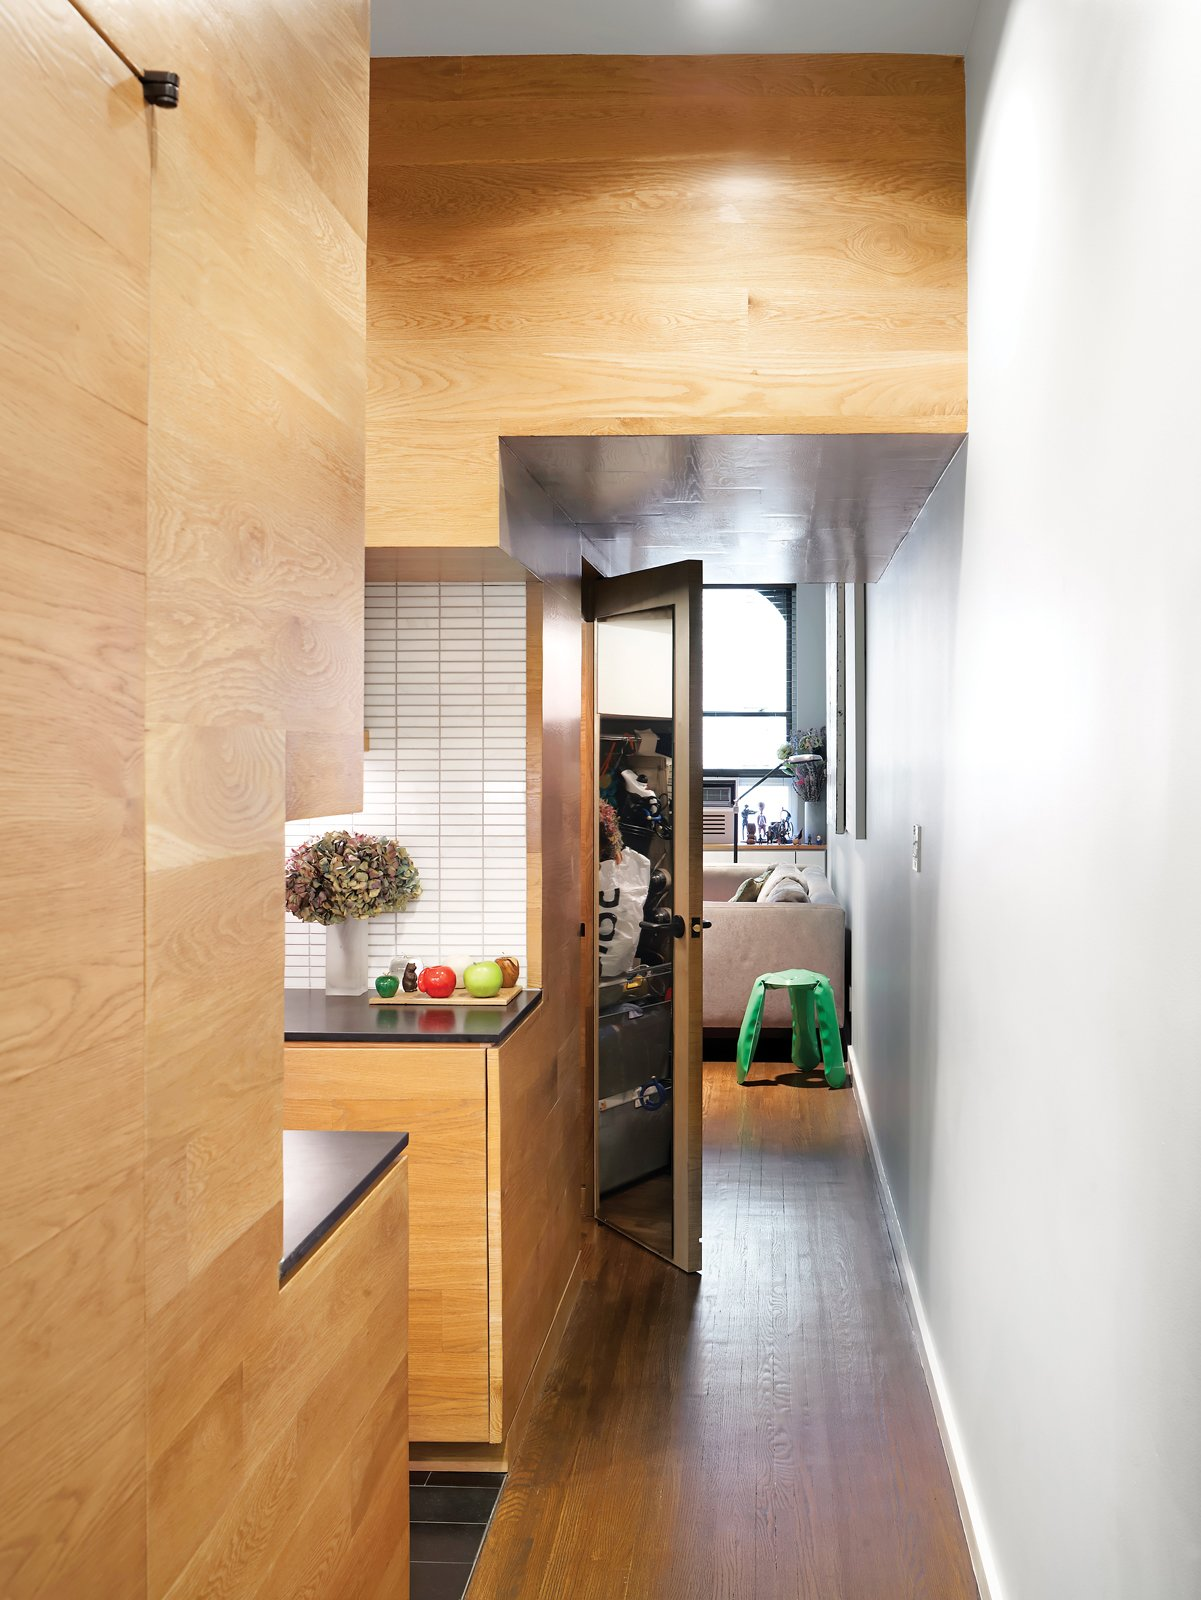 White oak paneling imbues uniformity and warmth into the hallway, kitchen, and living spaces. Tagged: Kitchen, Wood Cabinet, Ceramic Tile Backsplashe, and Medium Hardwood Floor.  Photo 4 of 12 in The Manhattan Transformation